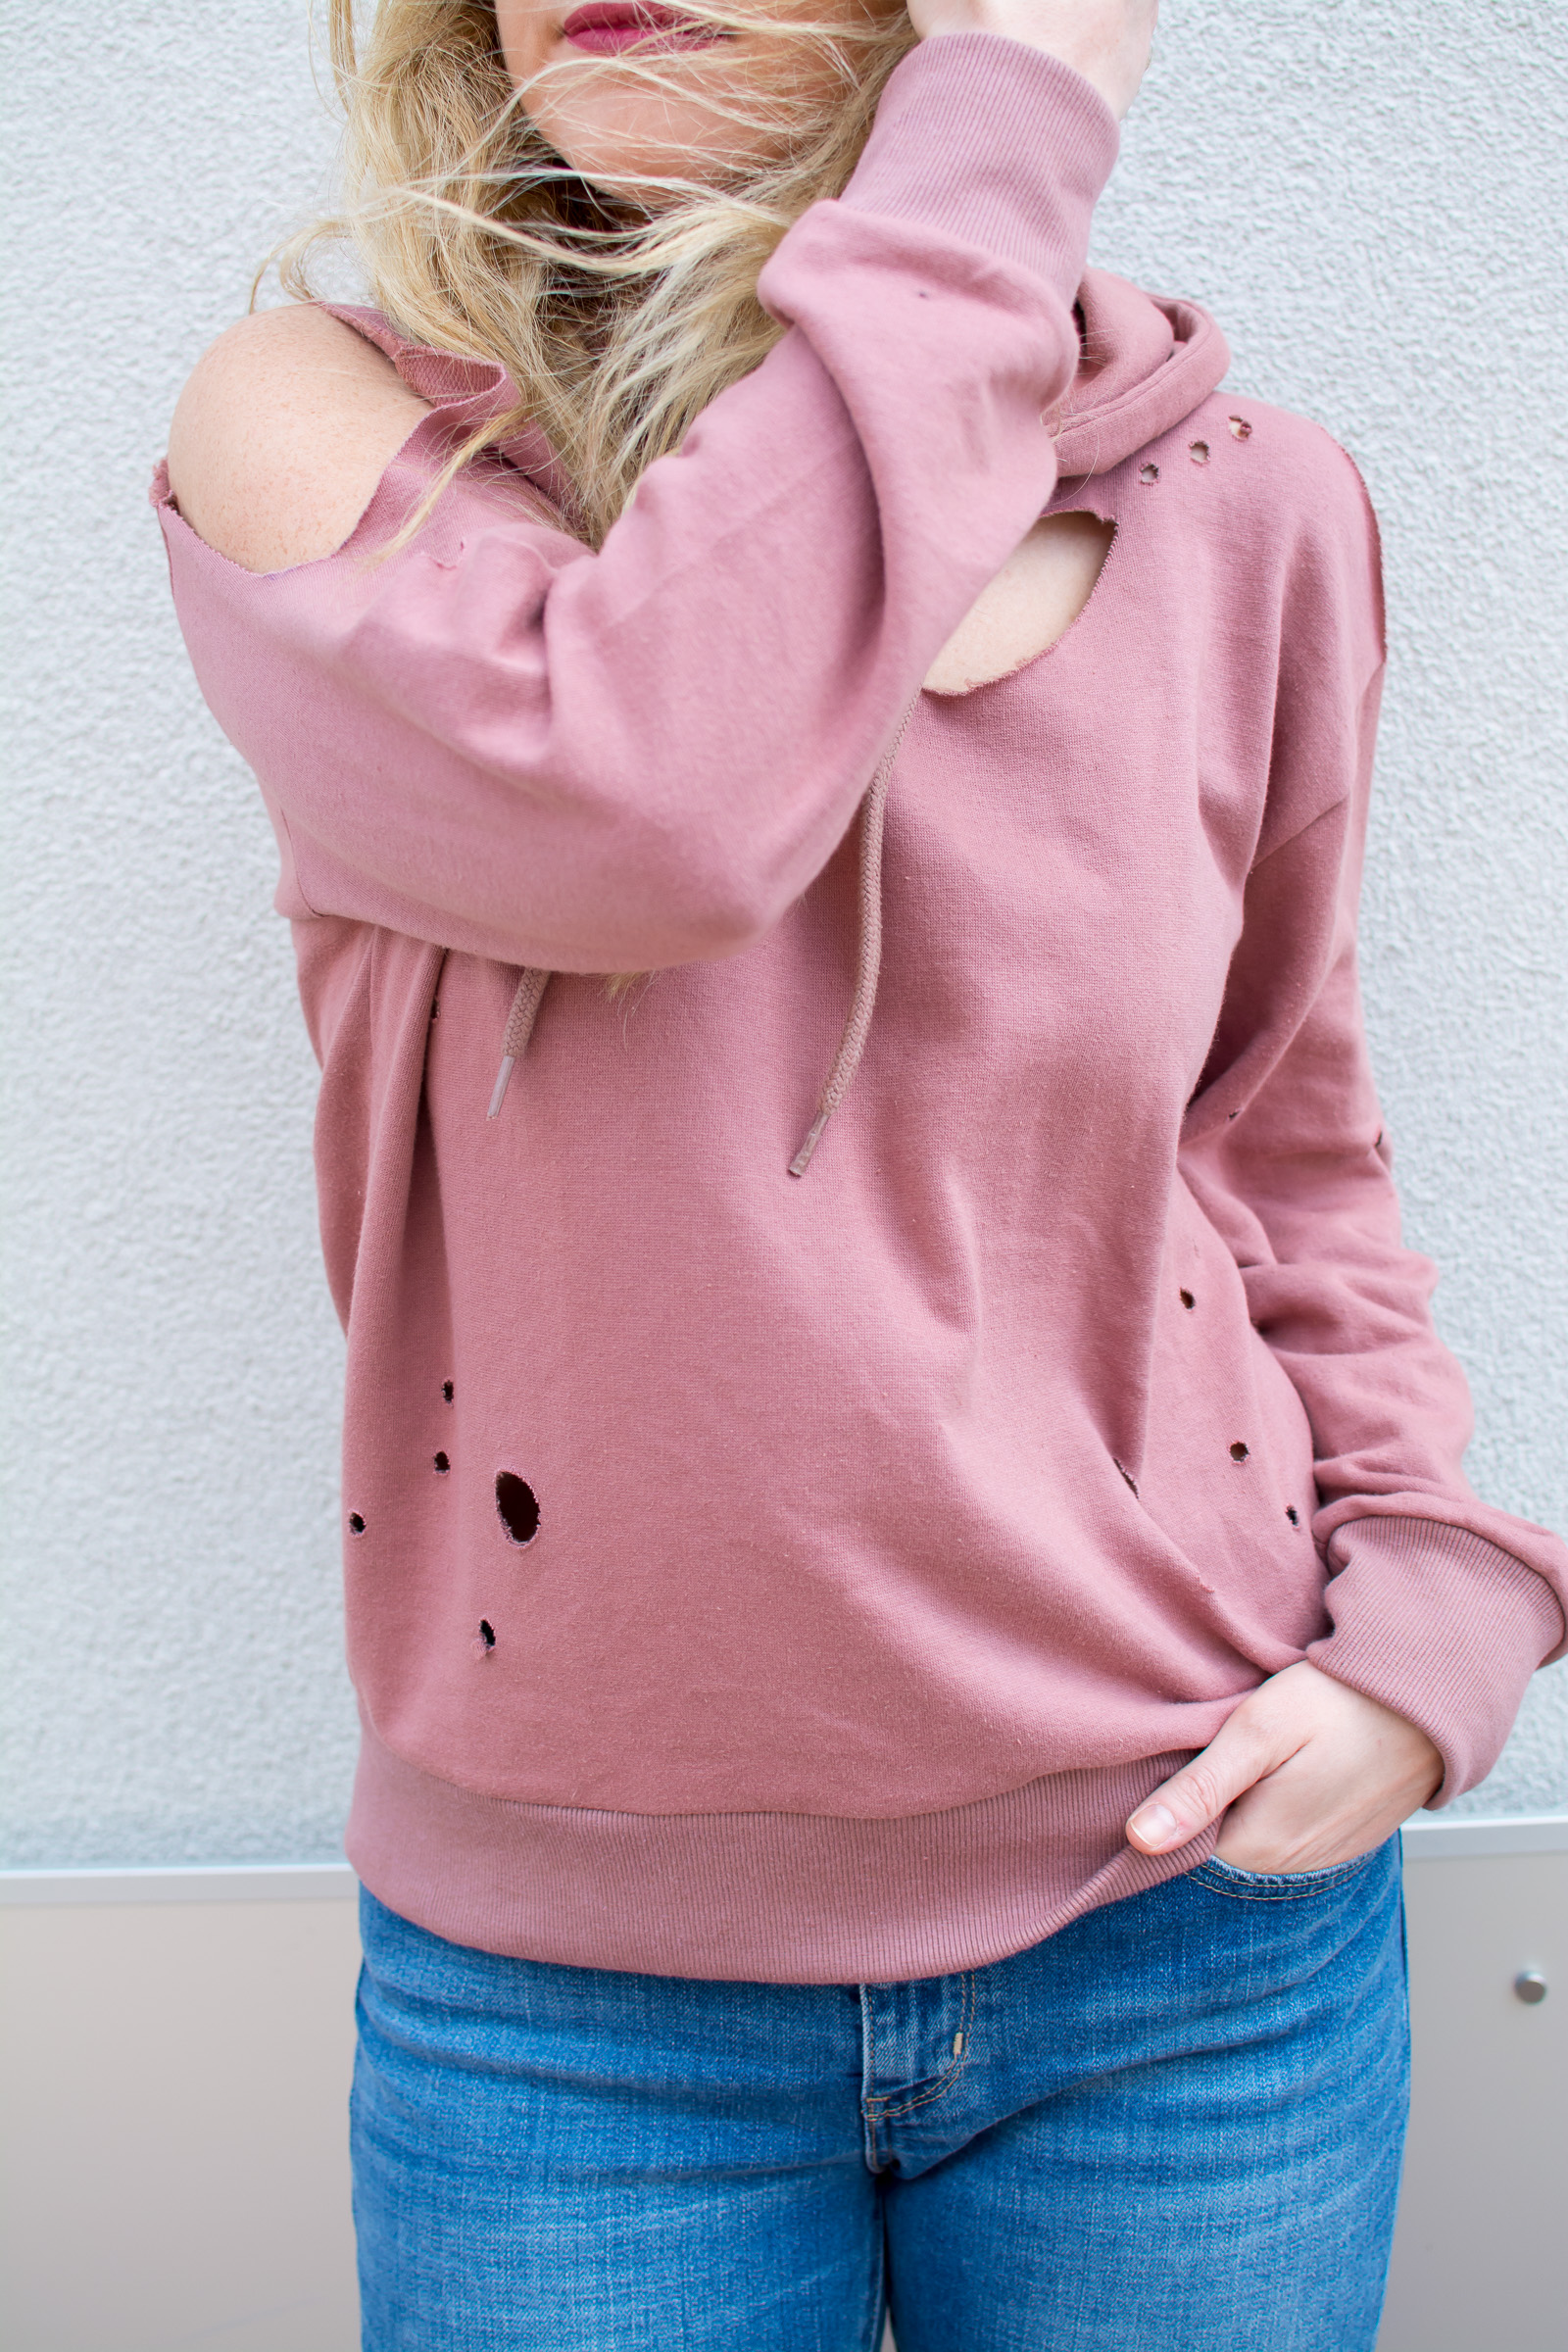 Destroyed Blush Hoodie. | Ashley from Le Stylo Rouge